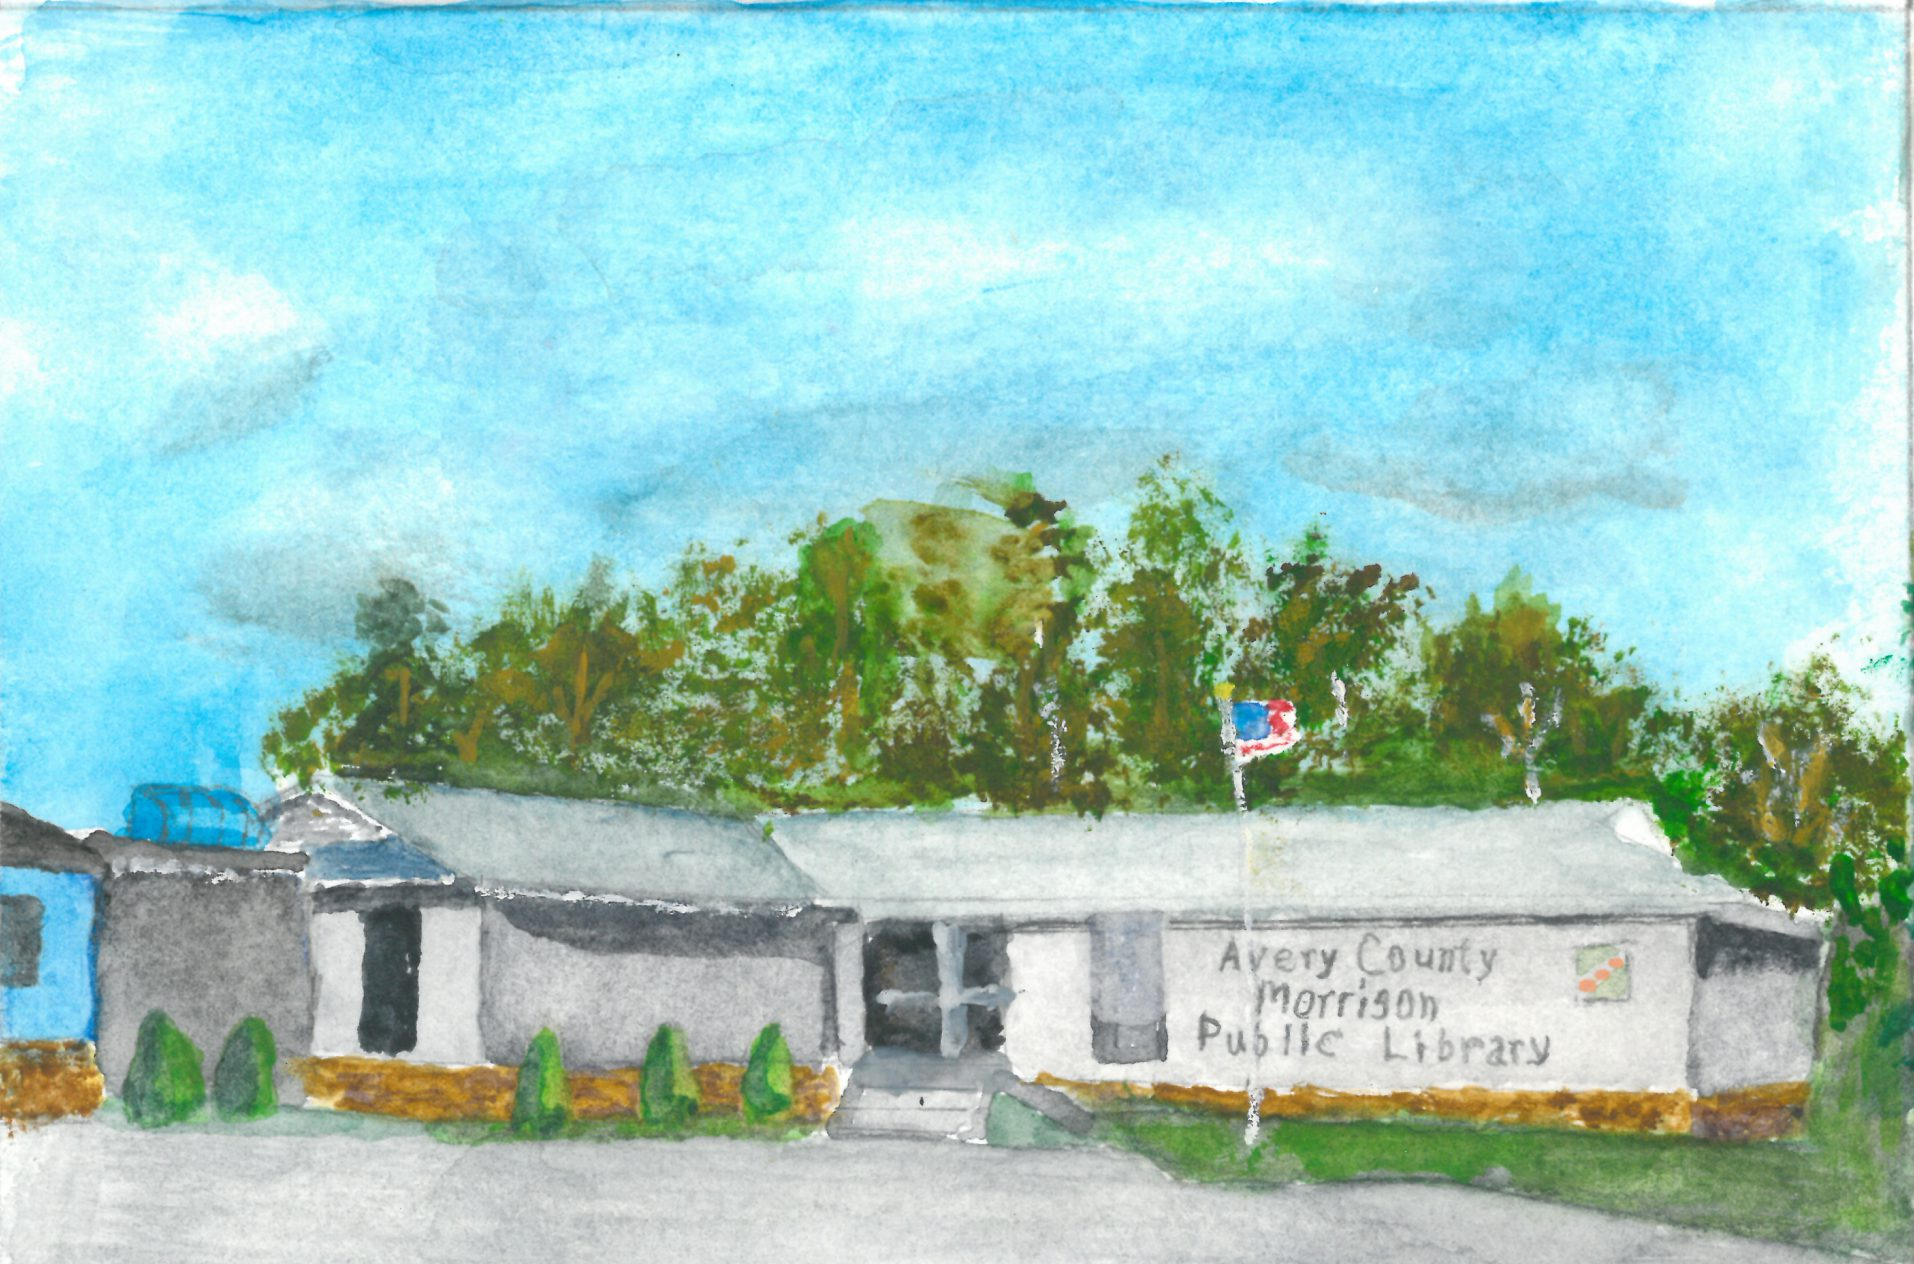 Watercolor of Avery County Morrison Public Library by Charles Gillespie